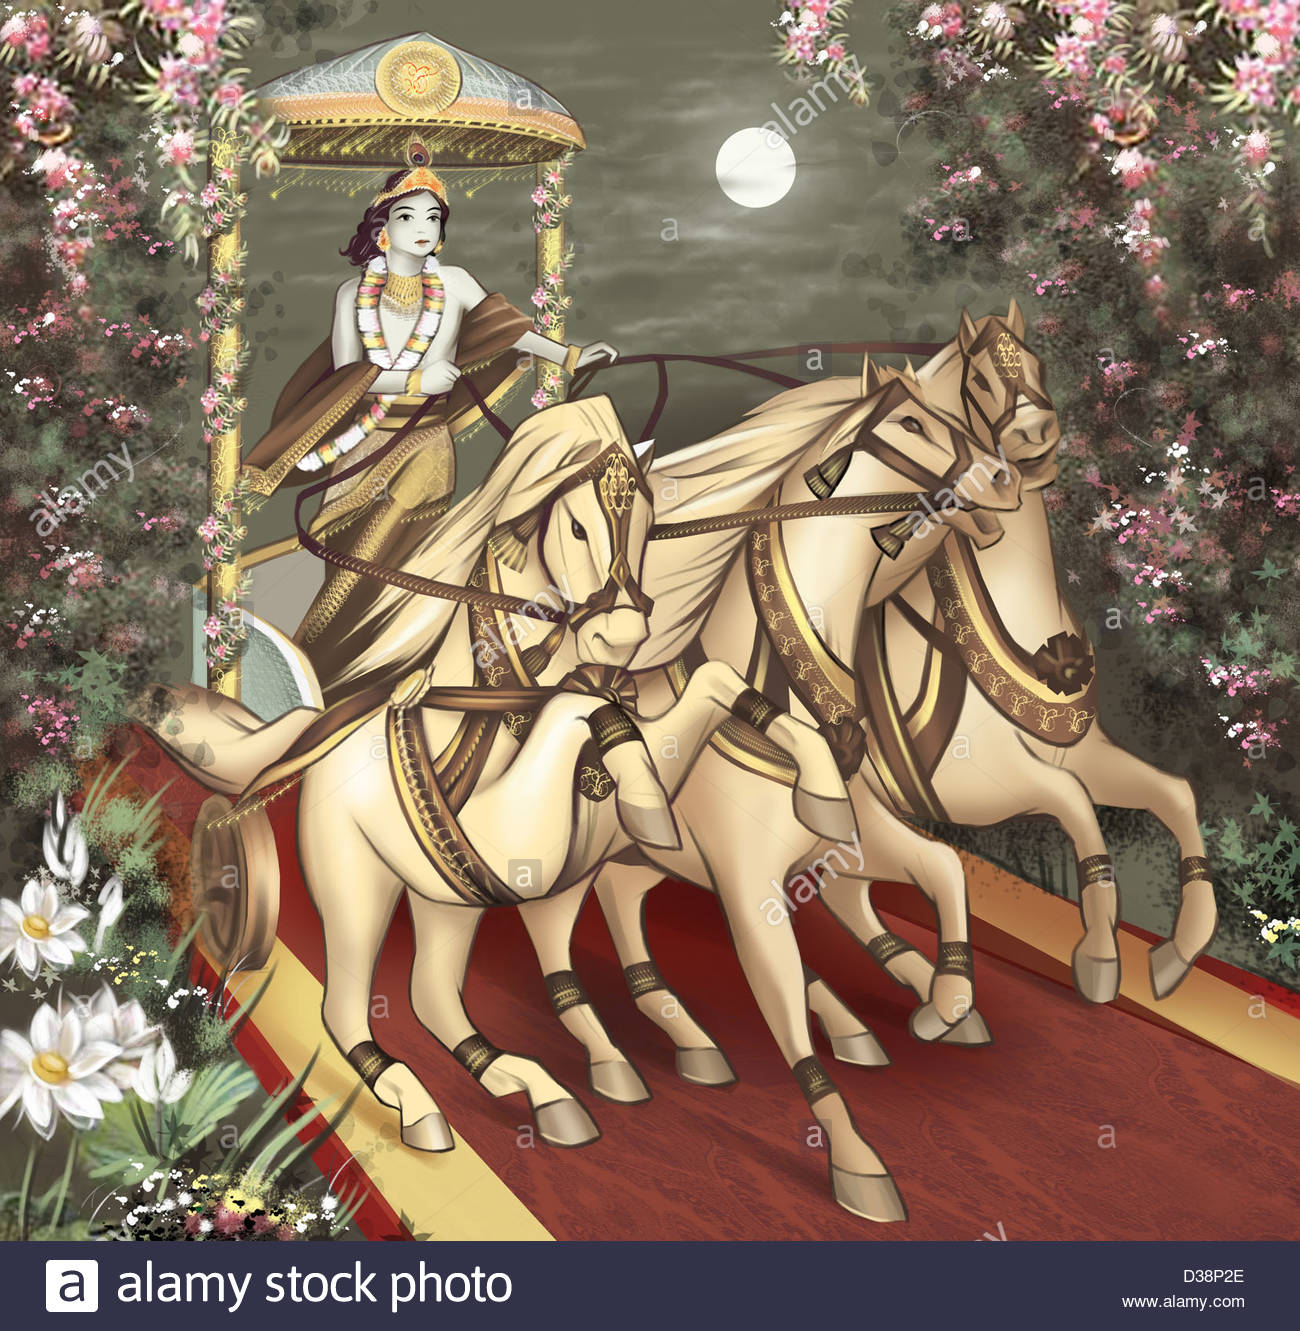 Lord Krishna Riding A Chariot Stock Photo, Royalty Free Image.